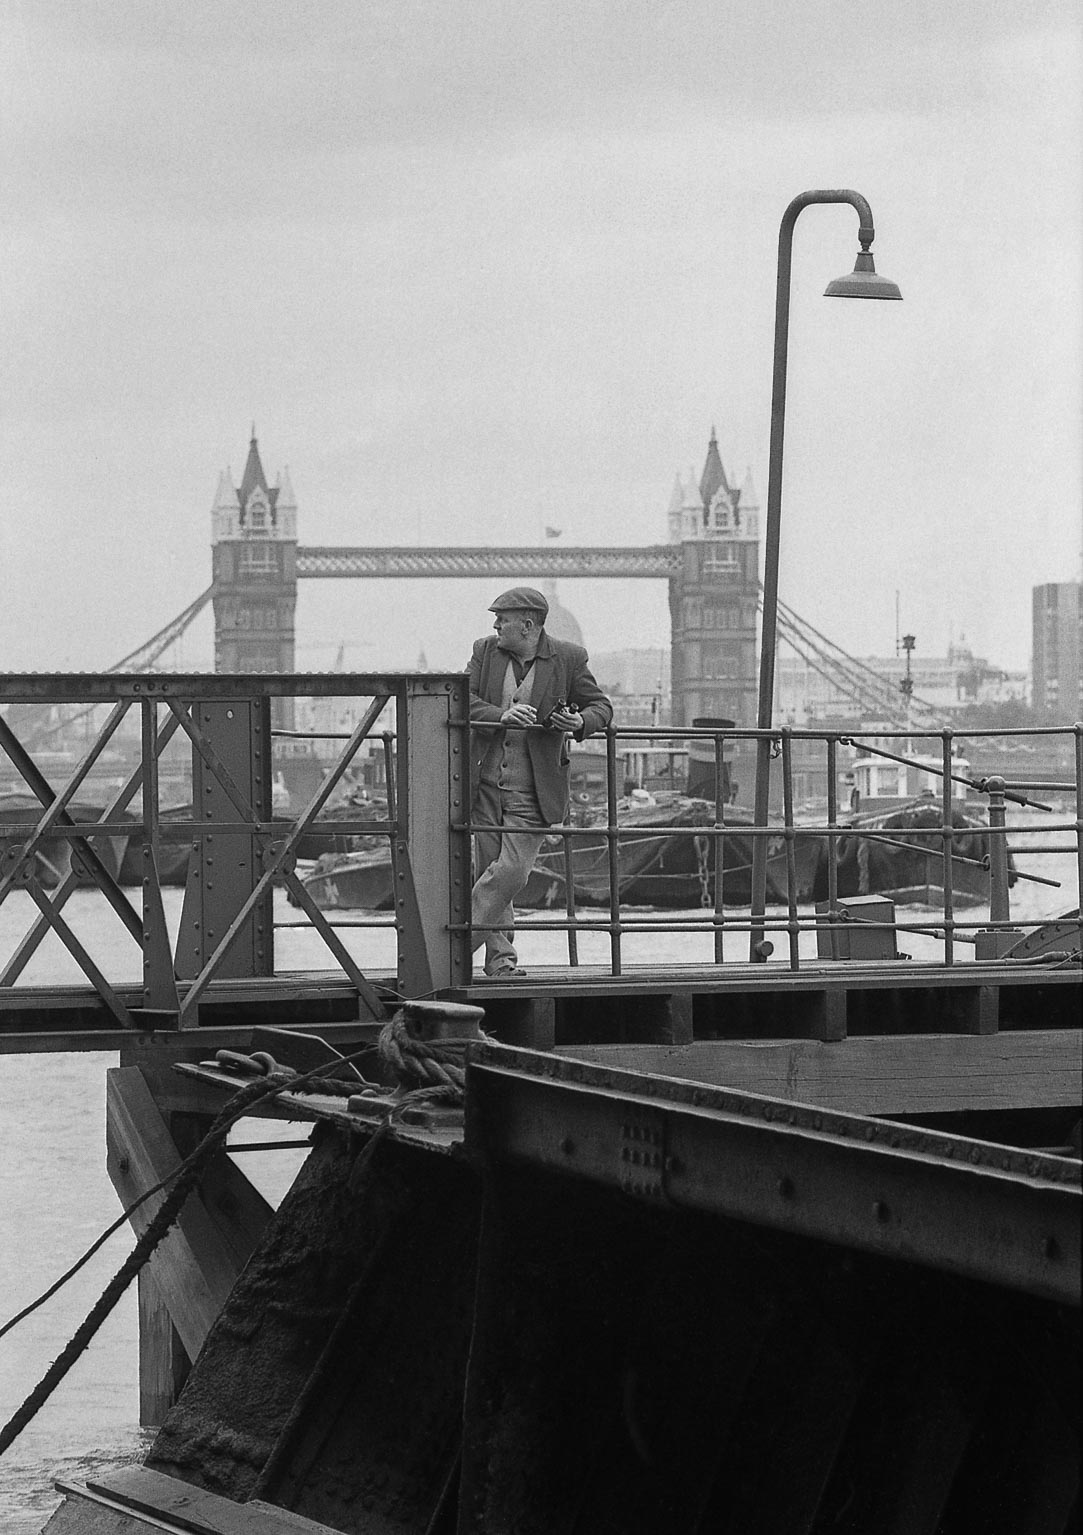 London Tower Bridge 1971 © Iris Editha Schacht